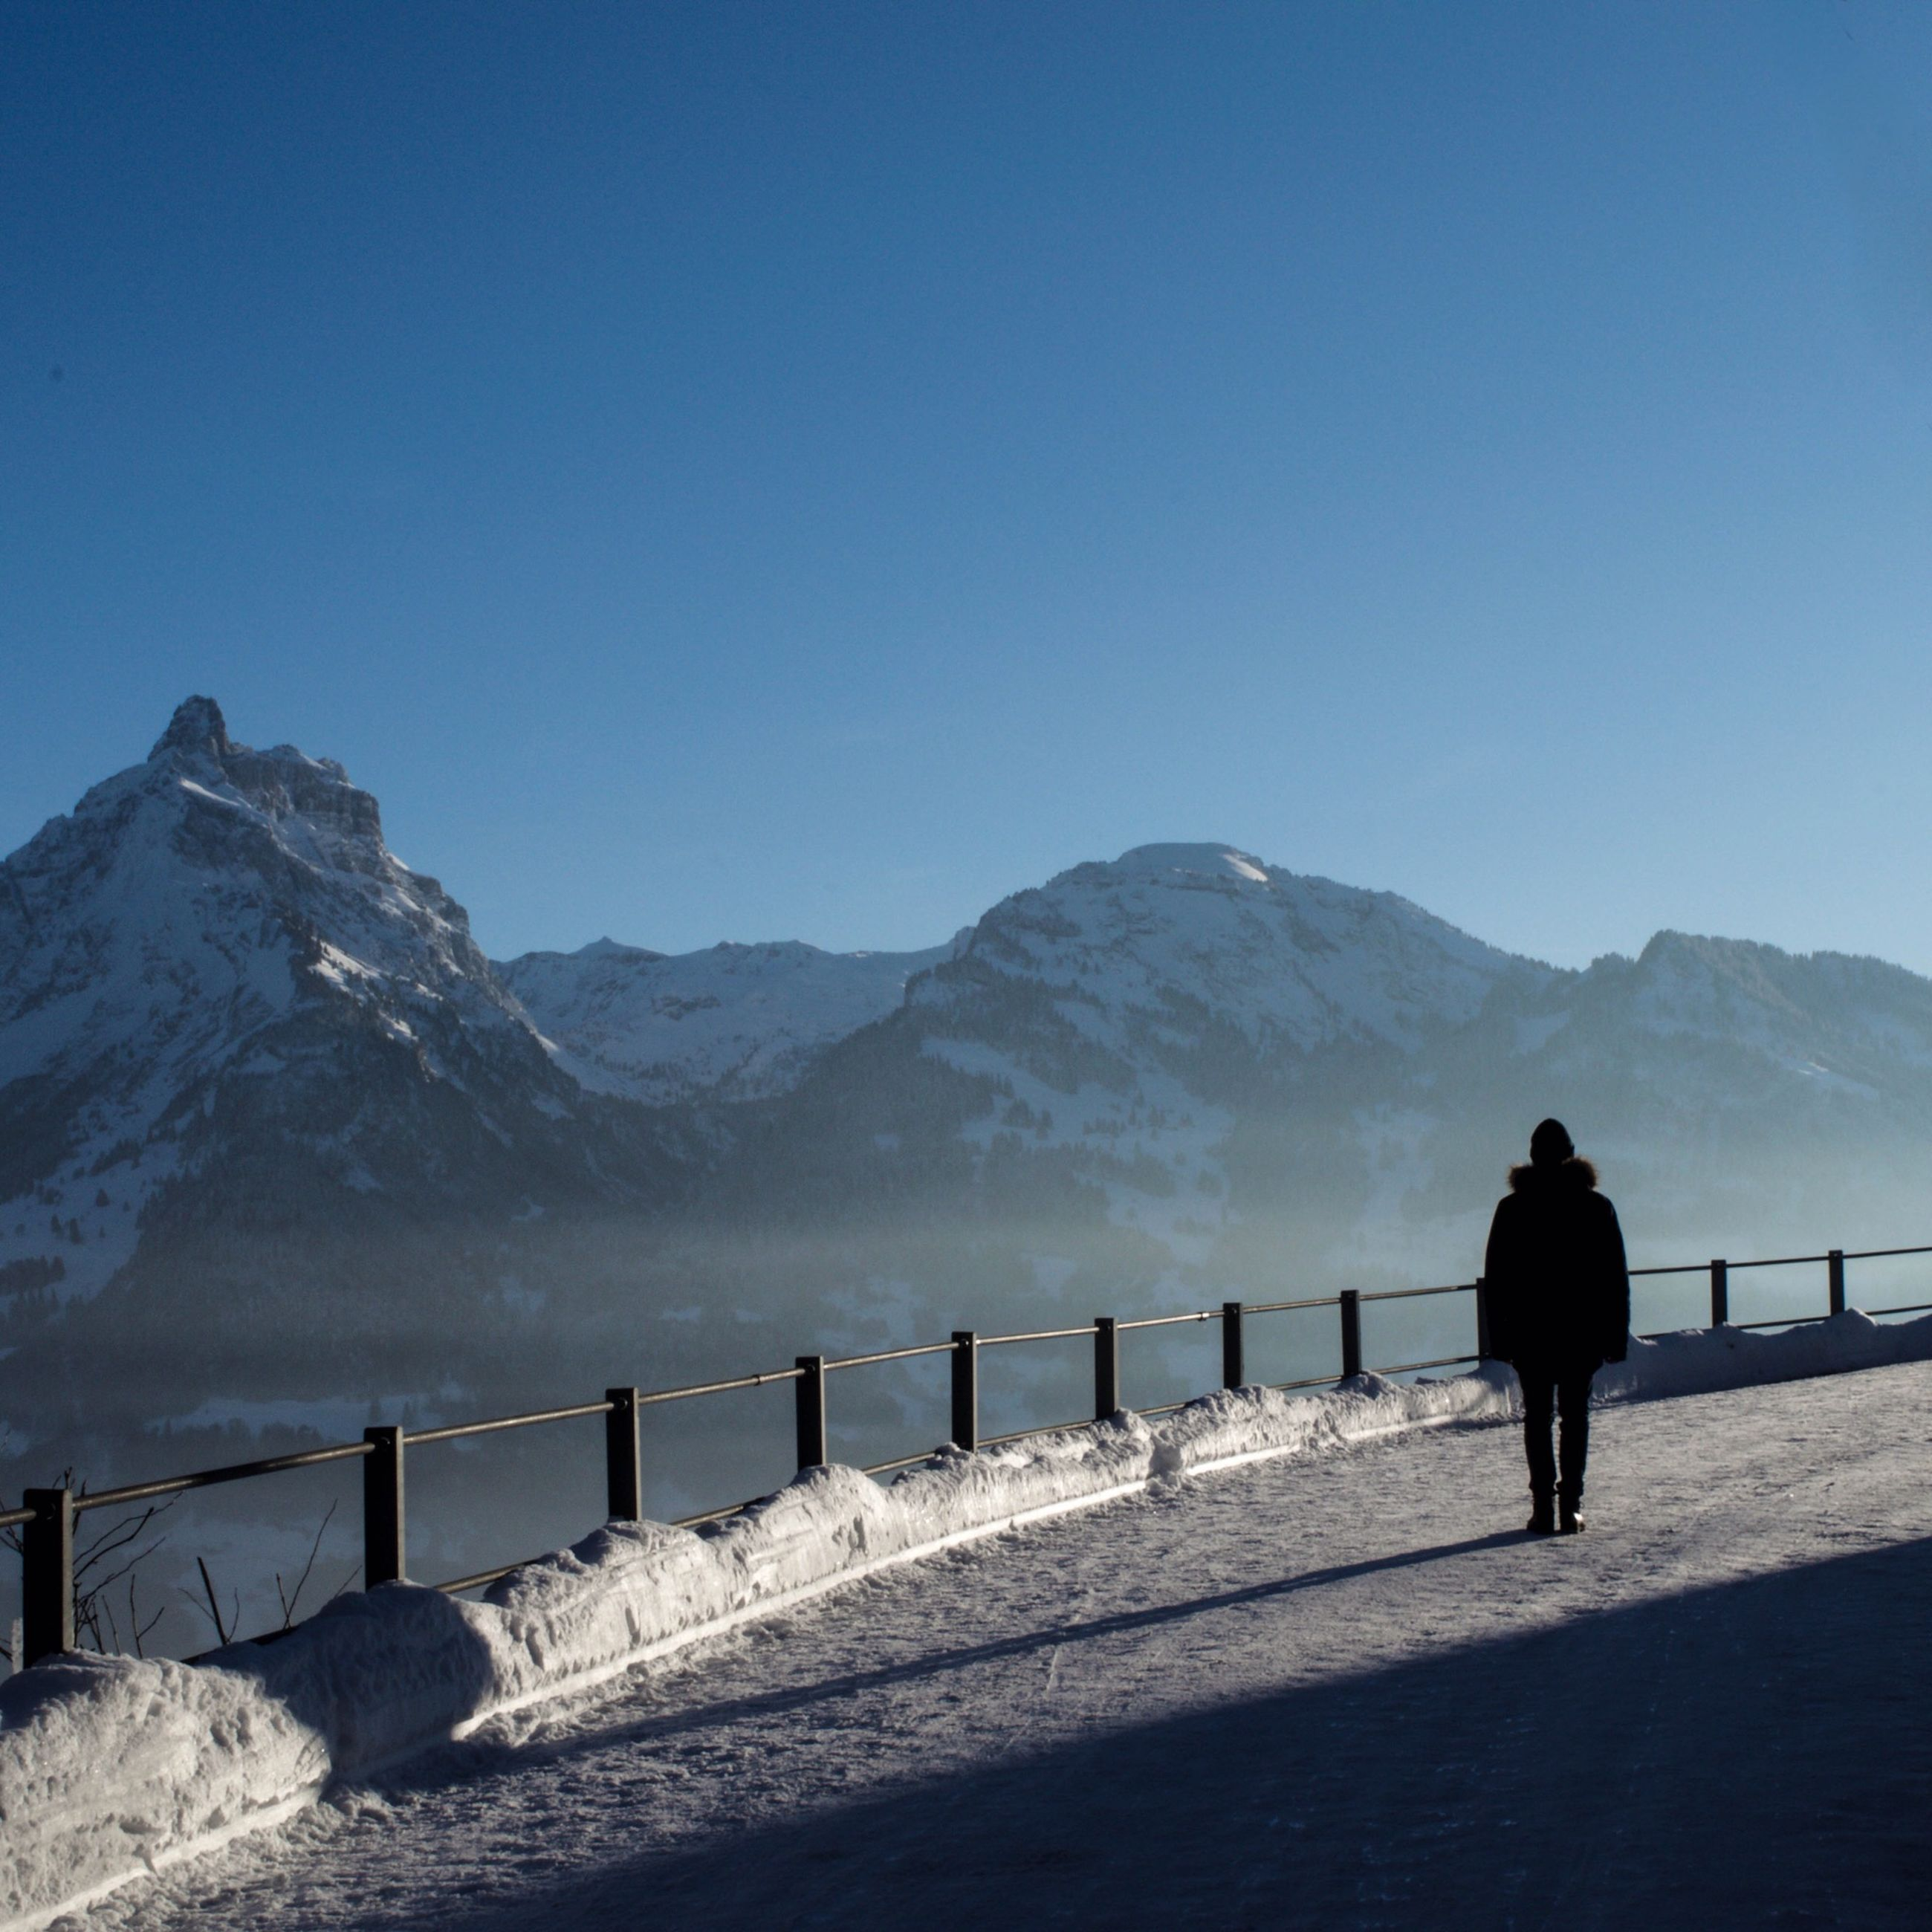 mountain, winter, snow, mountain range, cold temperature, full length, rear view, clear sky, tranquil scene, lifestyles, leisure activity, copy space, tranquility, scenics, men, standing, railing, walking